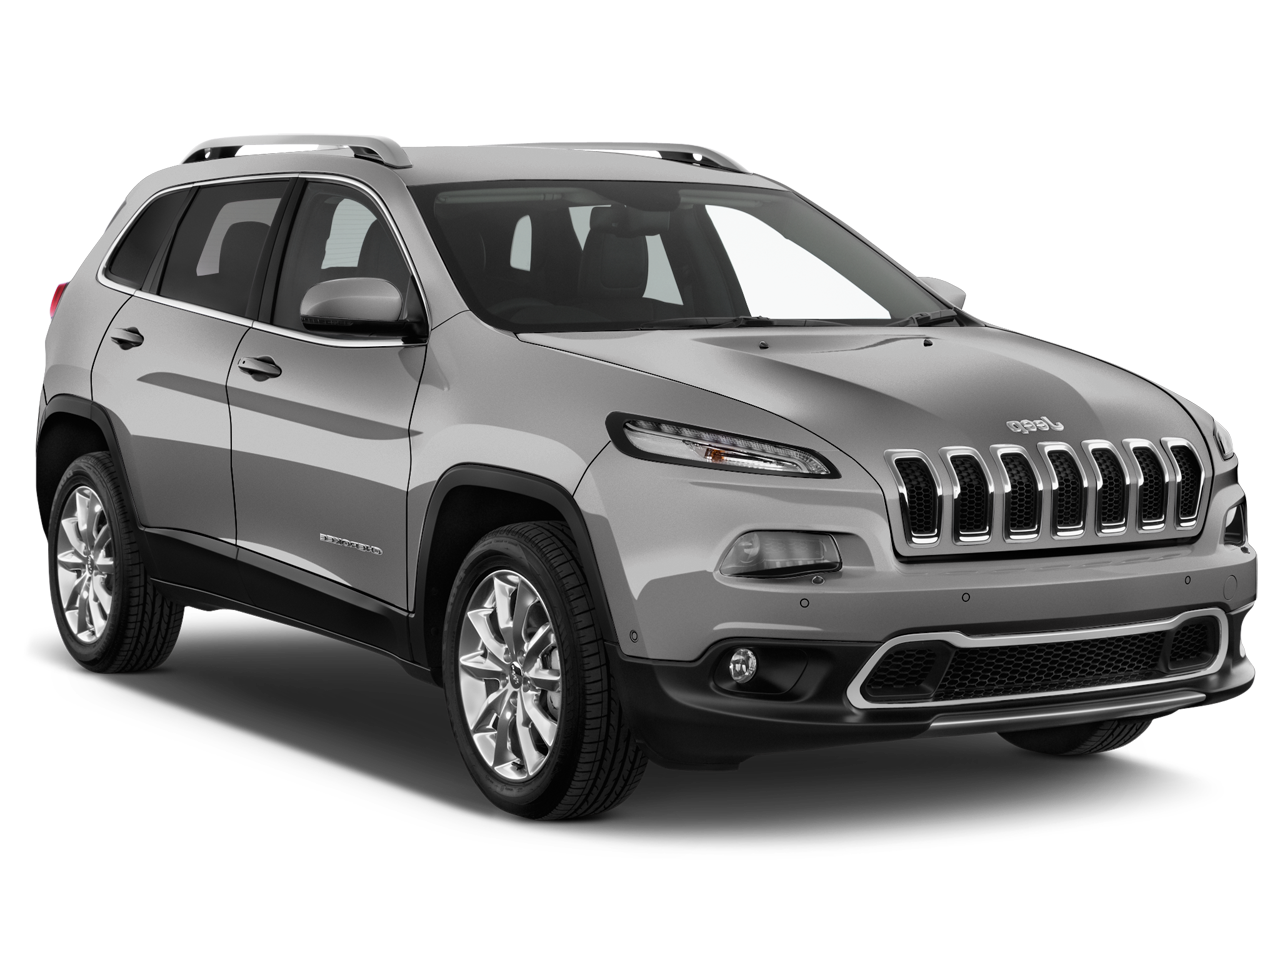 New Jeep Cherokee at Quirk Chrysler Jeep